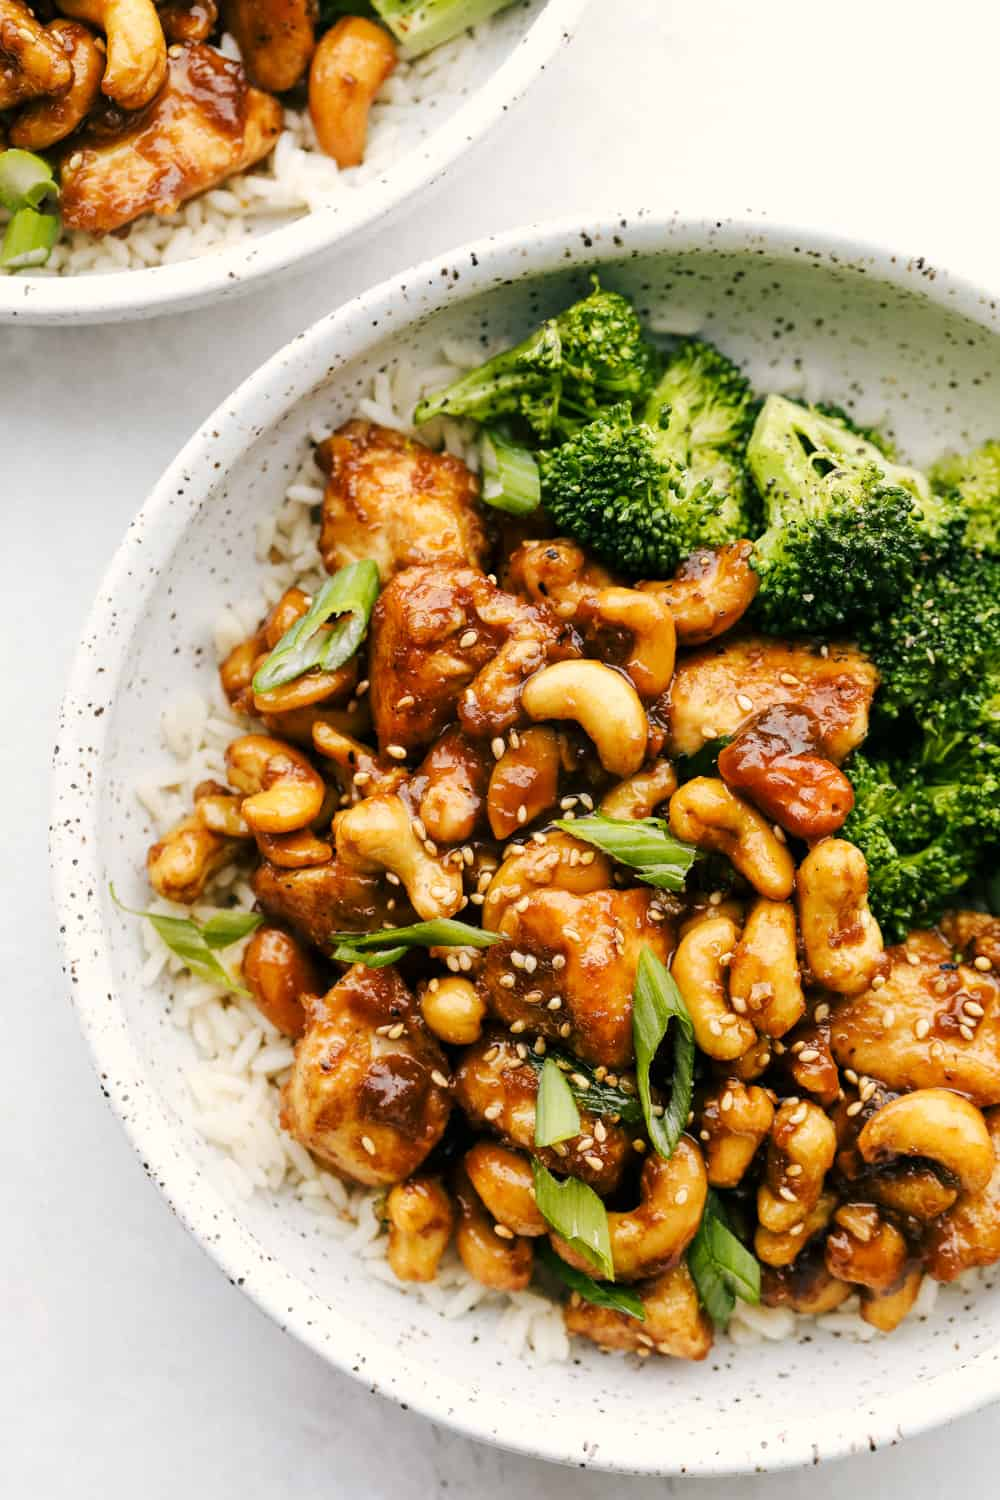 Cashew chicken on bed of rice with broccoli